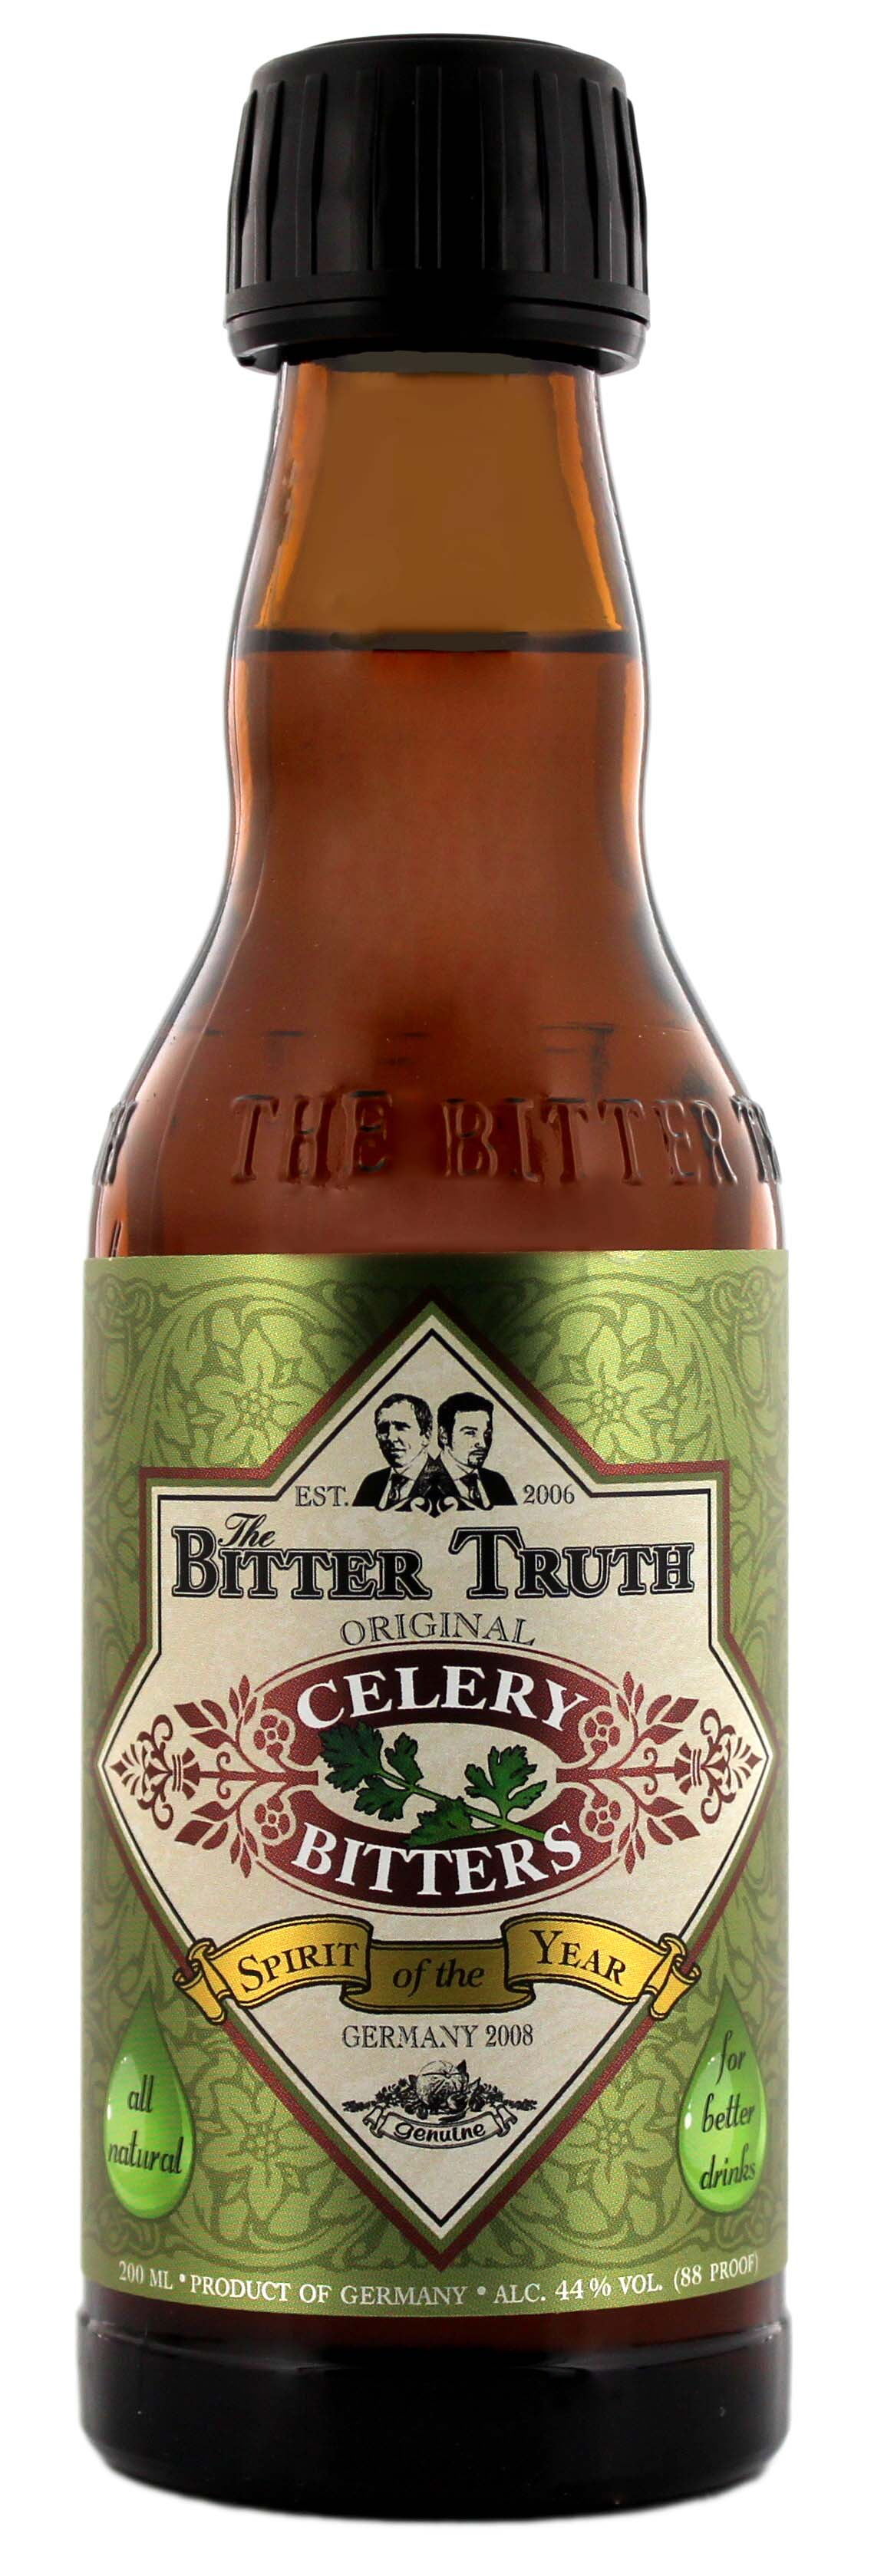 The Bitter Truth Celery Bitters 0,2L